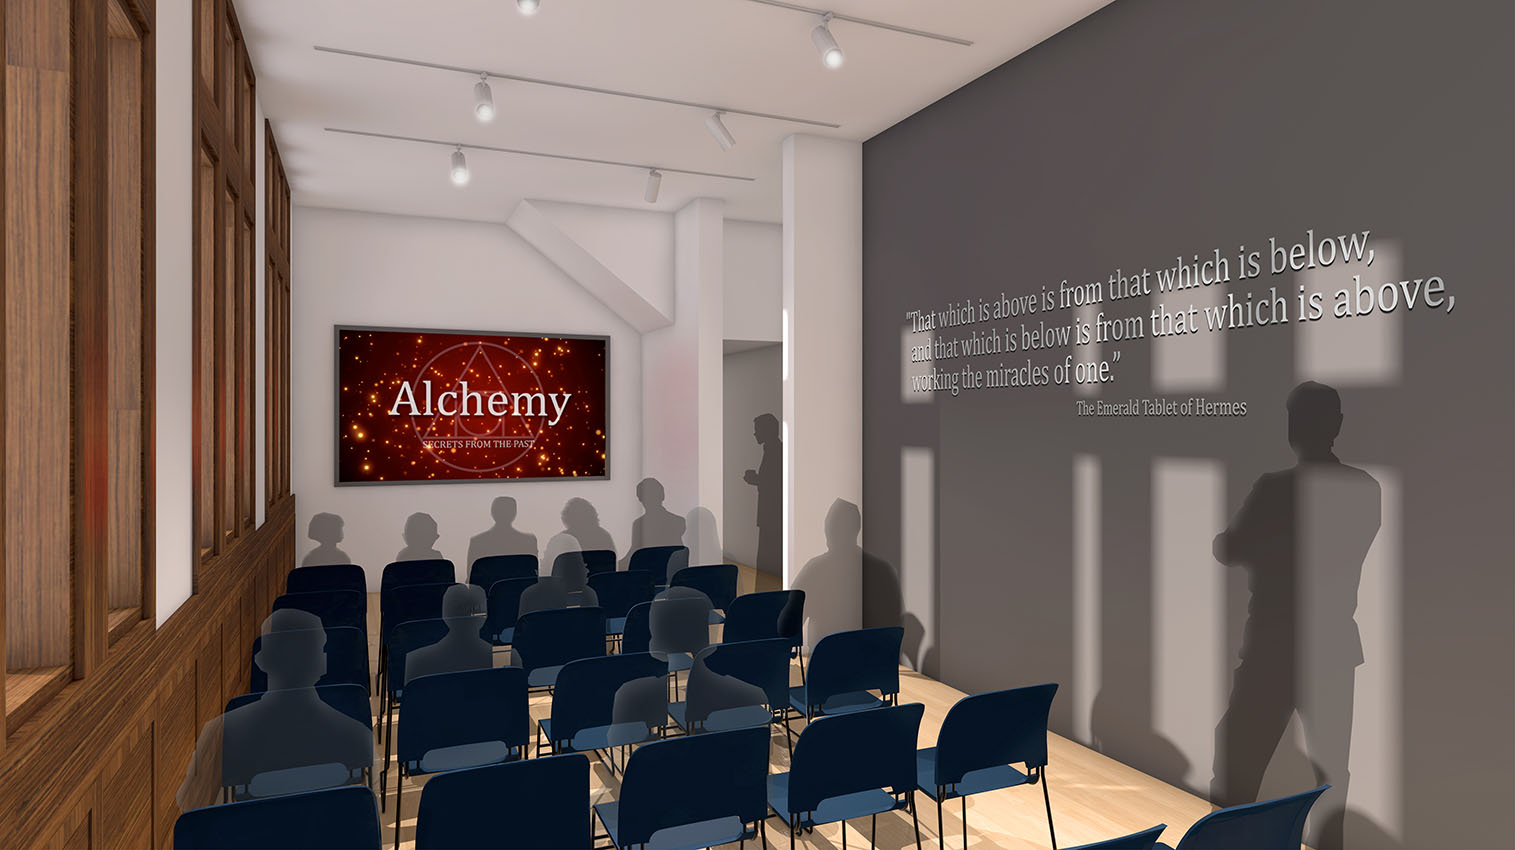 Alchemy Museum Intro Theater